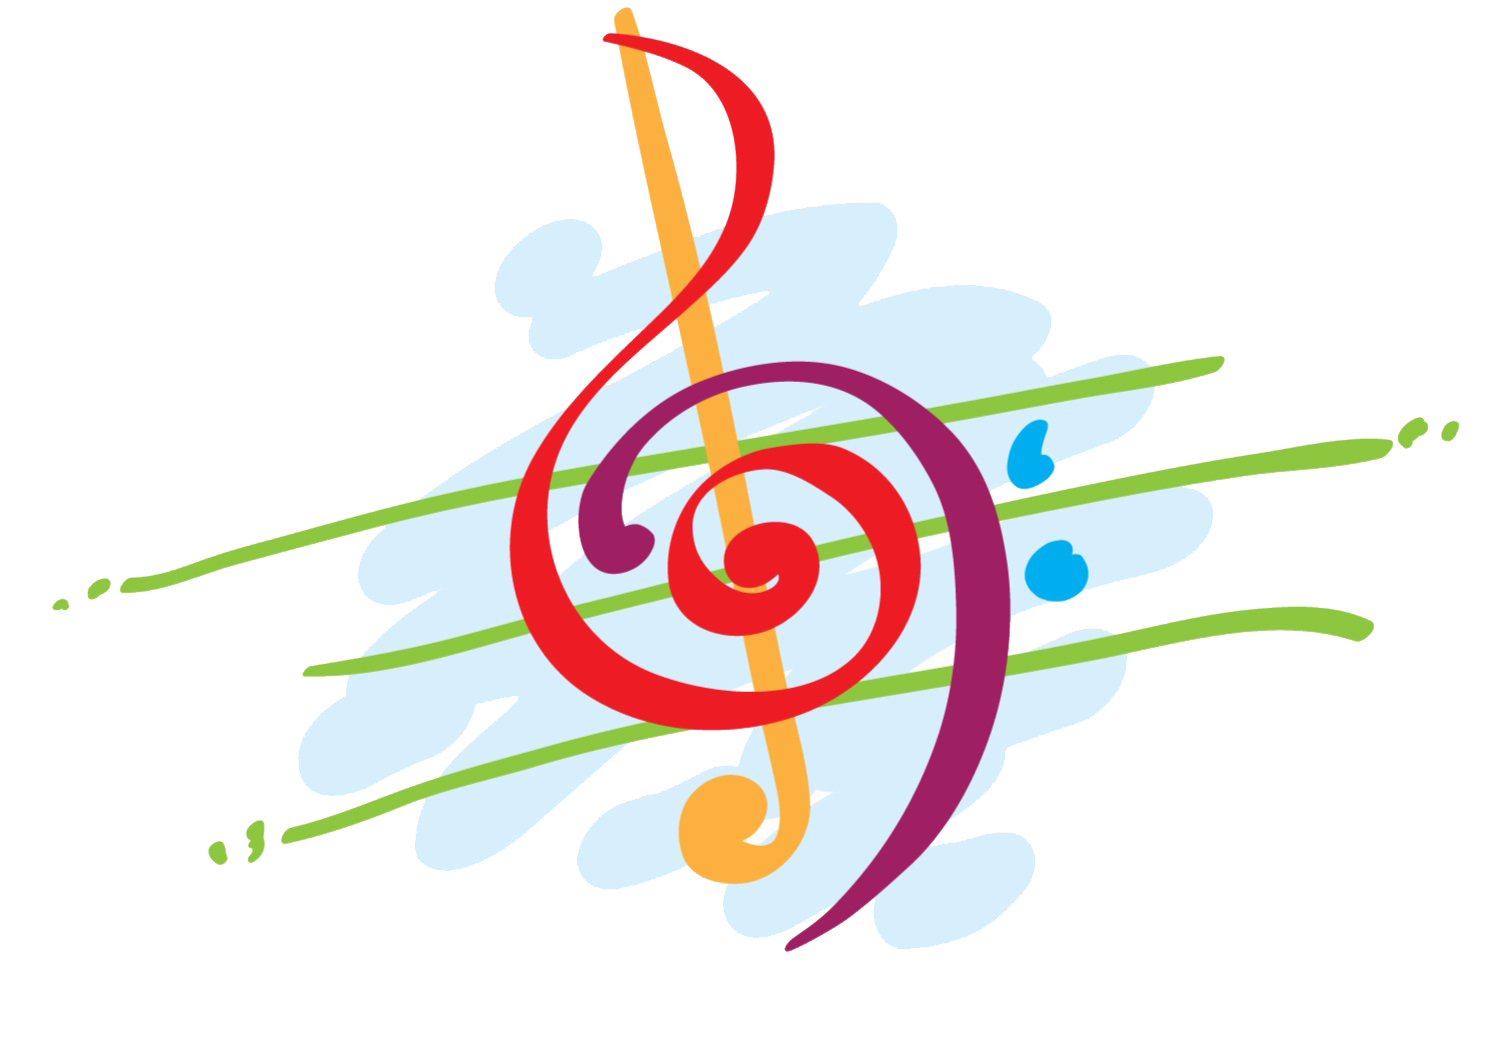 Png transparent free images. Youtube clipart music